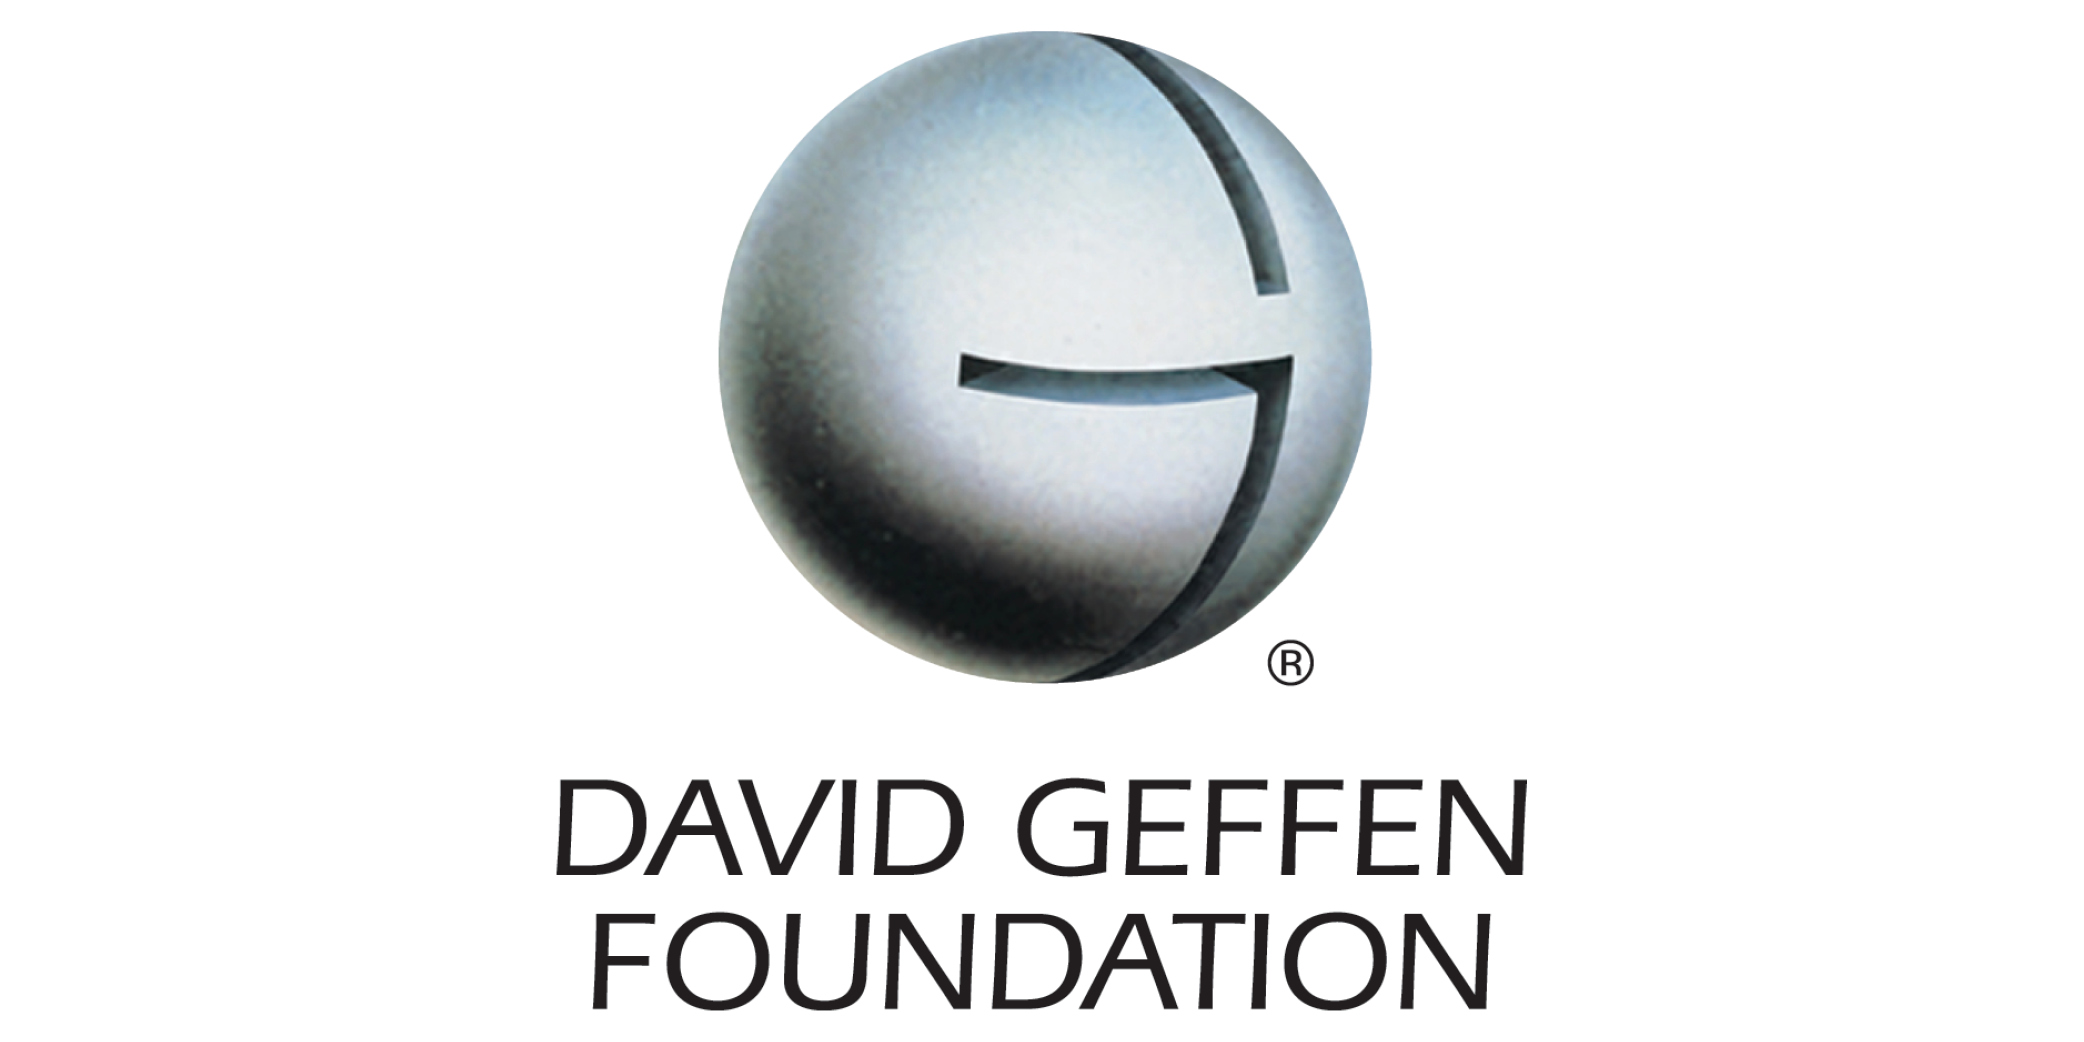 DAVID GEFFEN FOUNDATION_C